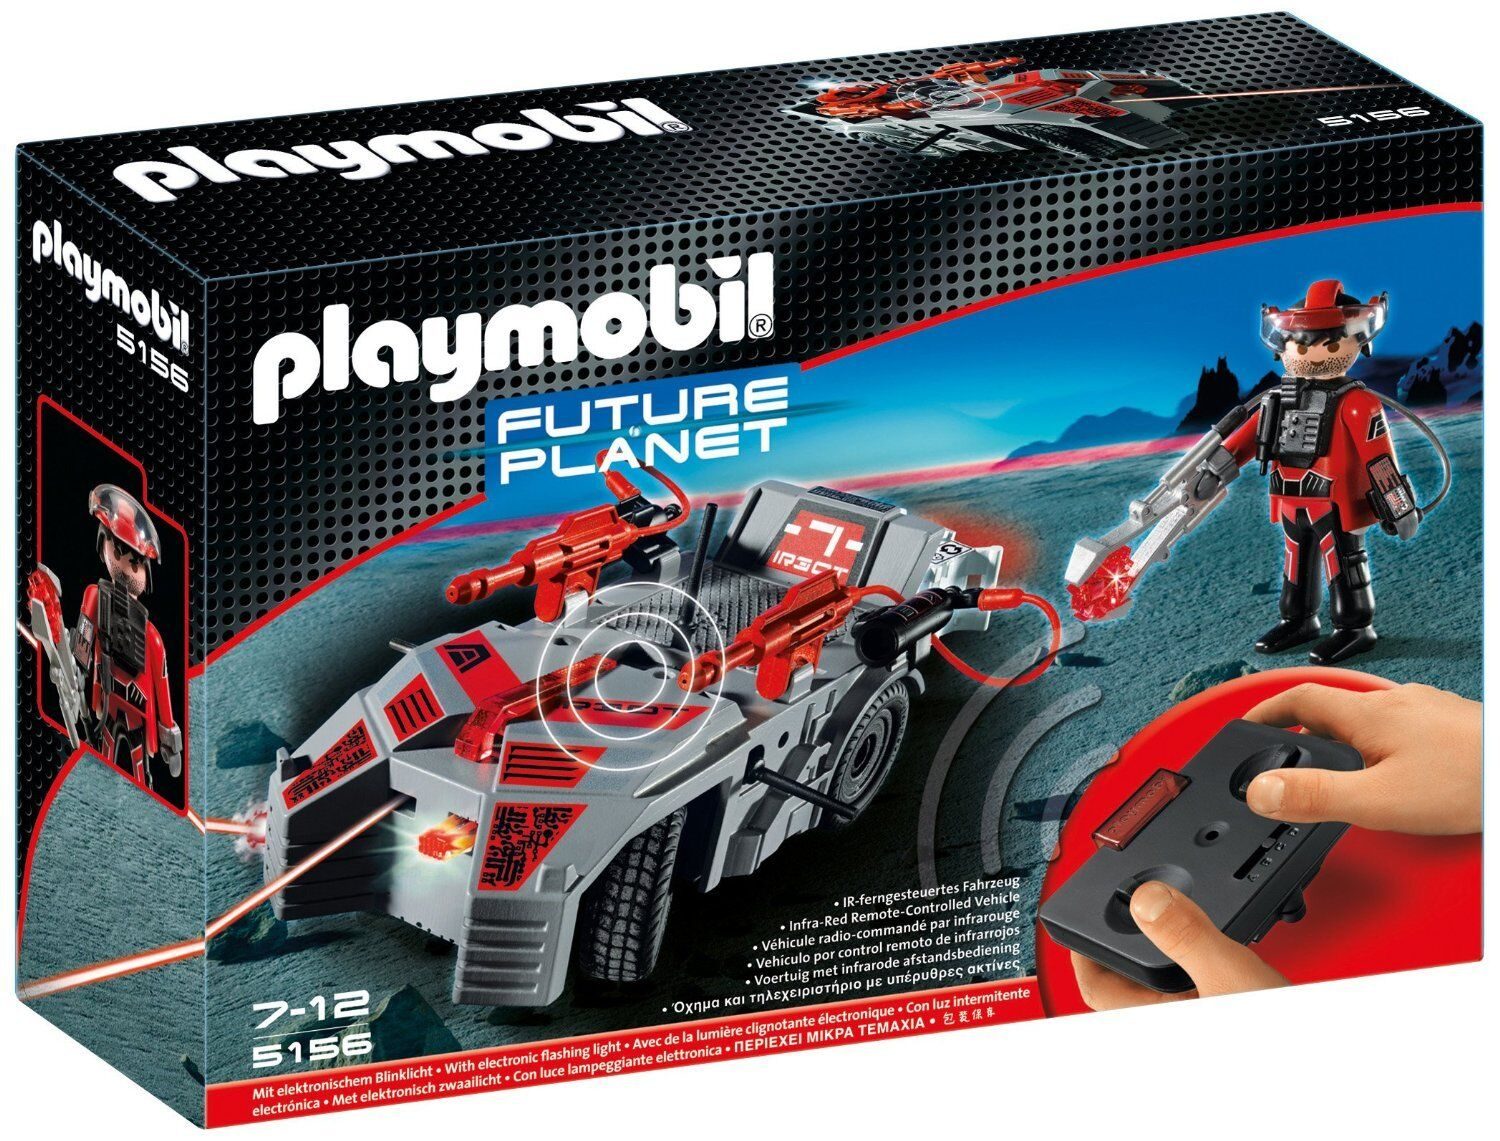 Playmobil 5156 Darksters Explorer with Flash Cannon and Infra-Red Remote Control